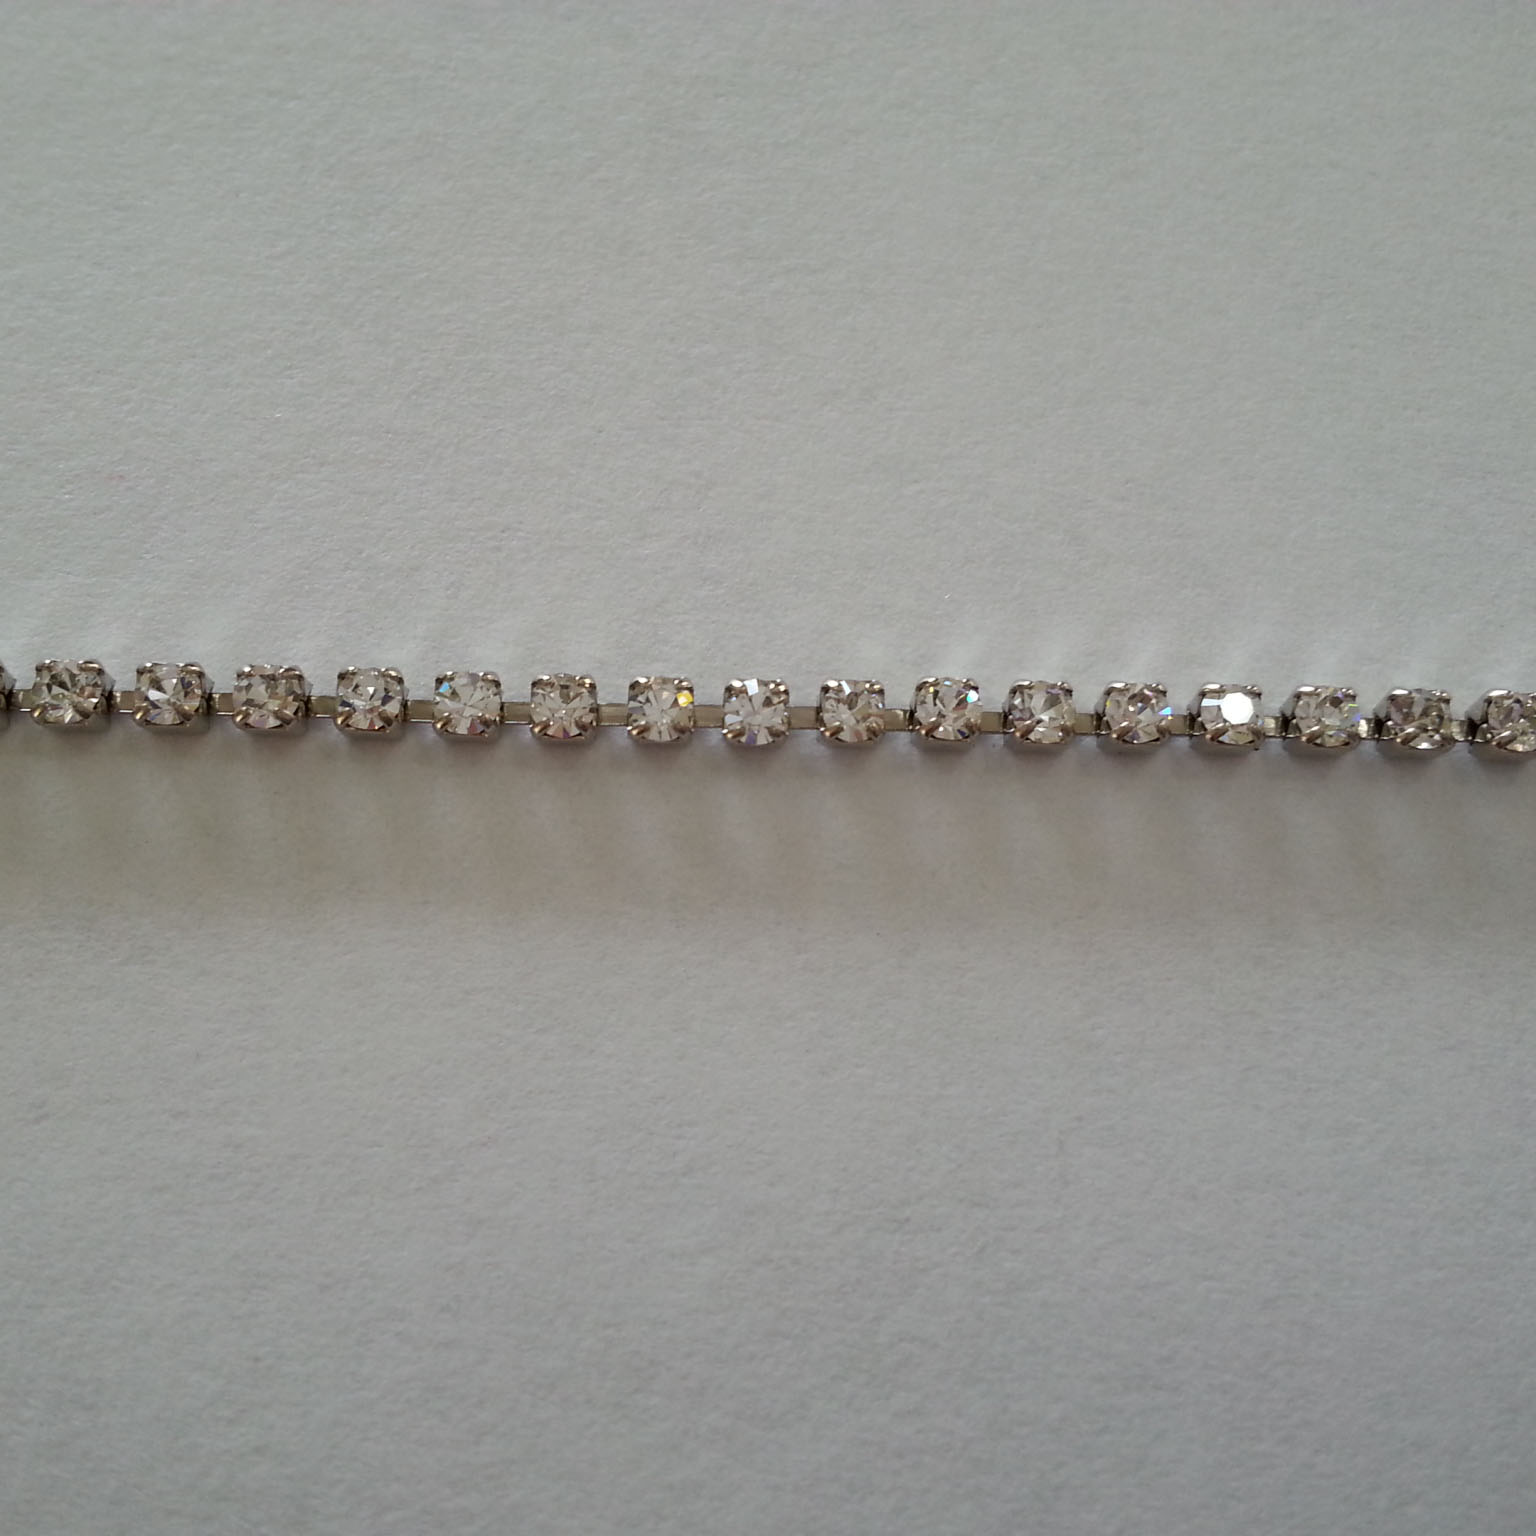 Catena strass 2mm - (Crystal) 1 metro